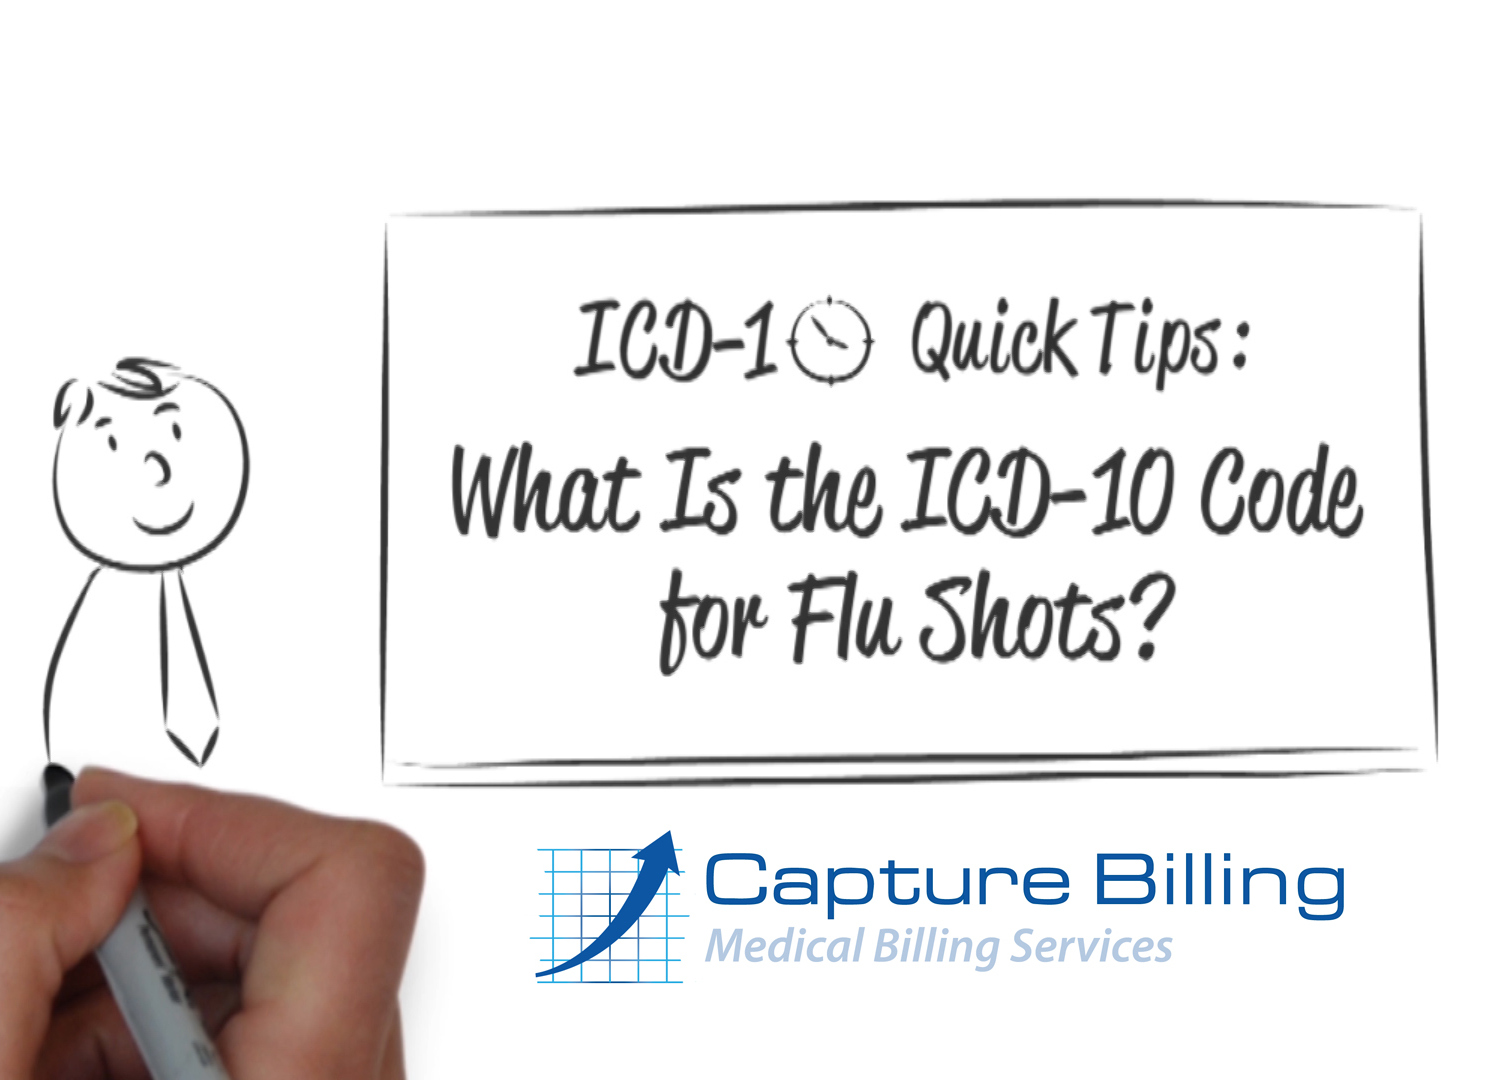 VIDEO: How To Bill Flu Shots under ICD-10